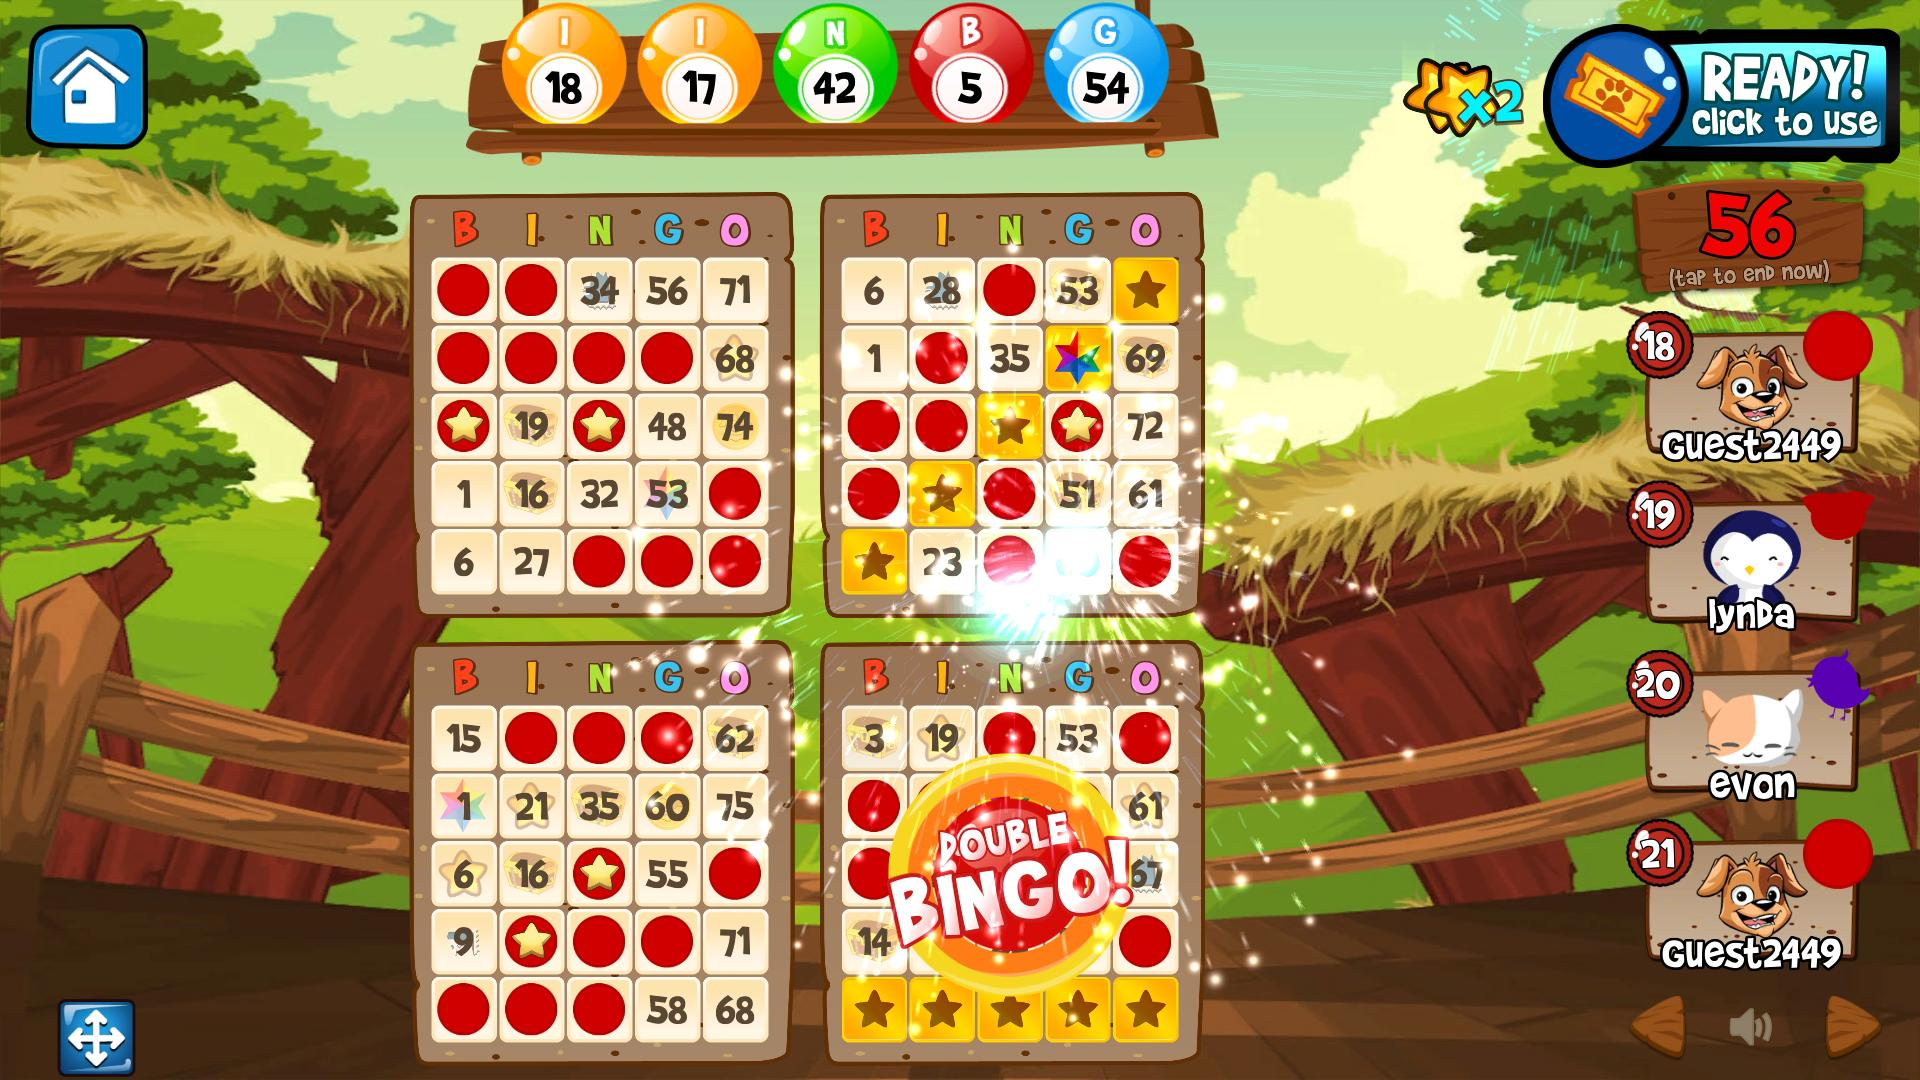 Bingo Abradoodle - Bingo Games Free to Play! 3.0.02 Screenshot 11